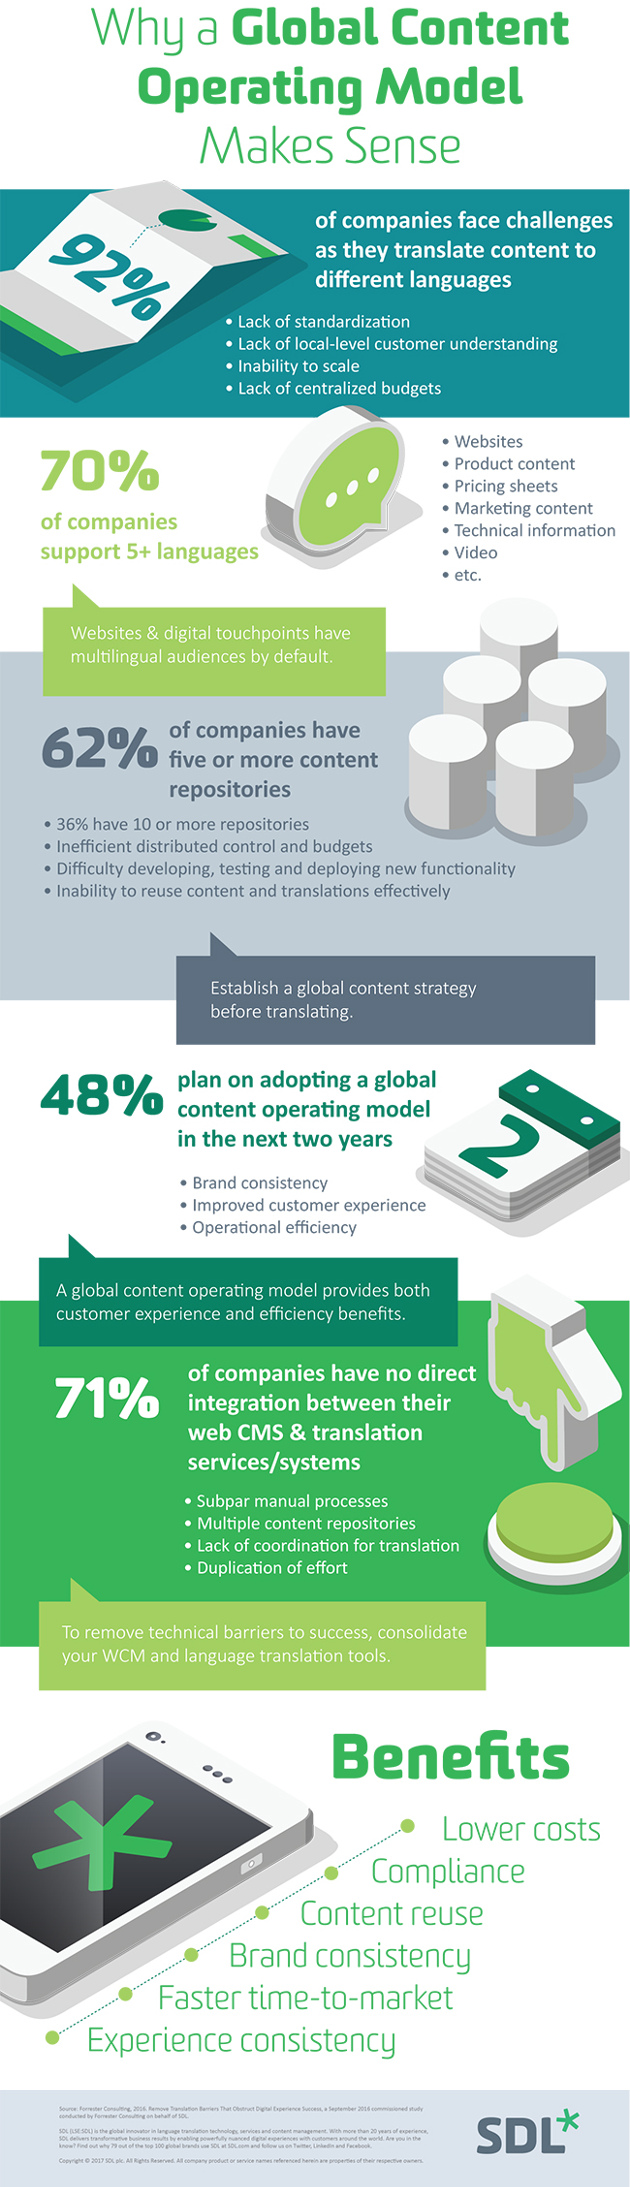 Why a Global Content Model Makes Sense in Today's Market [Infographic]